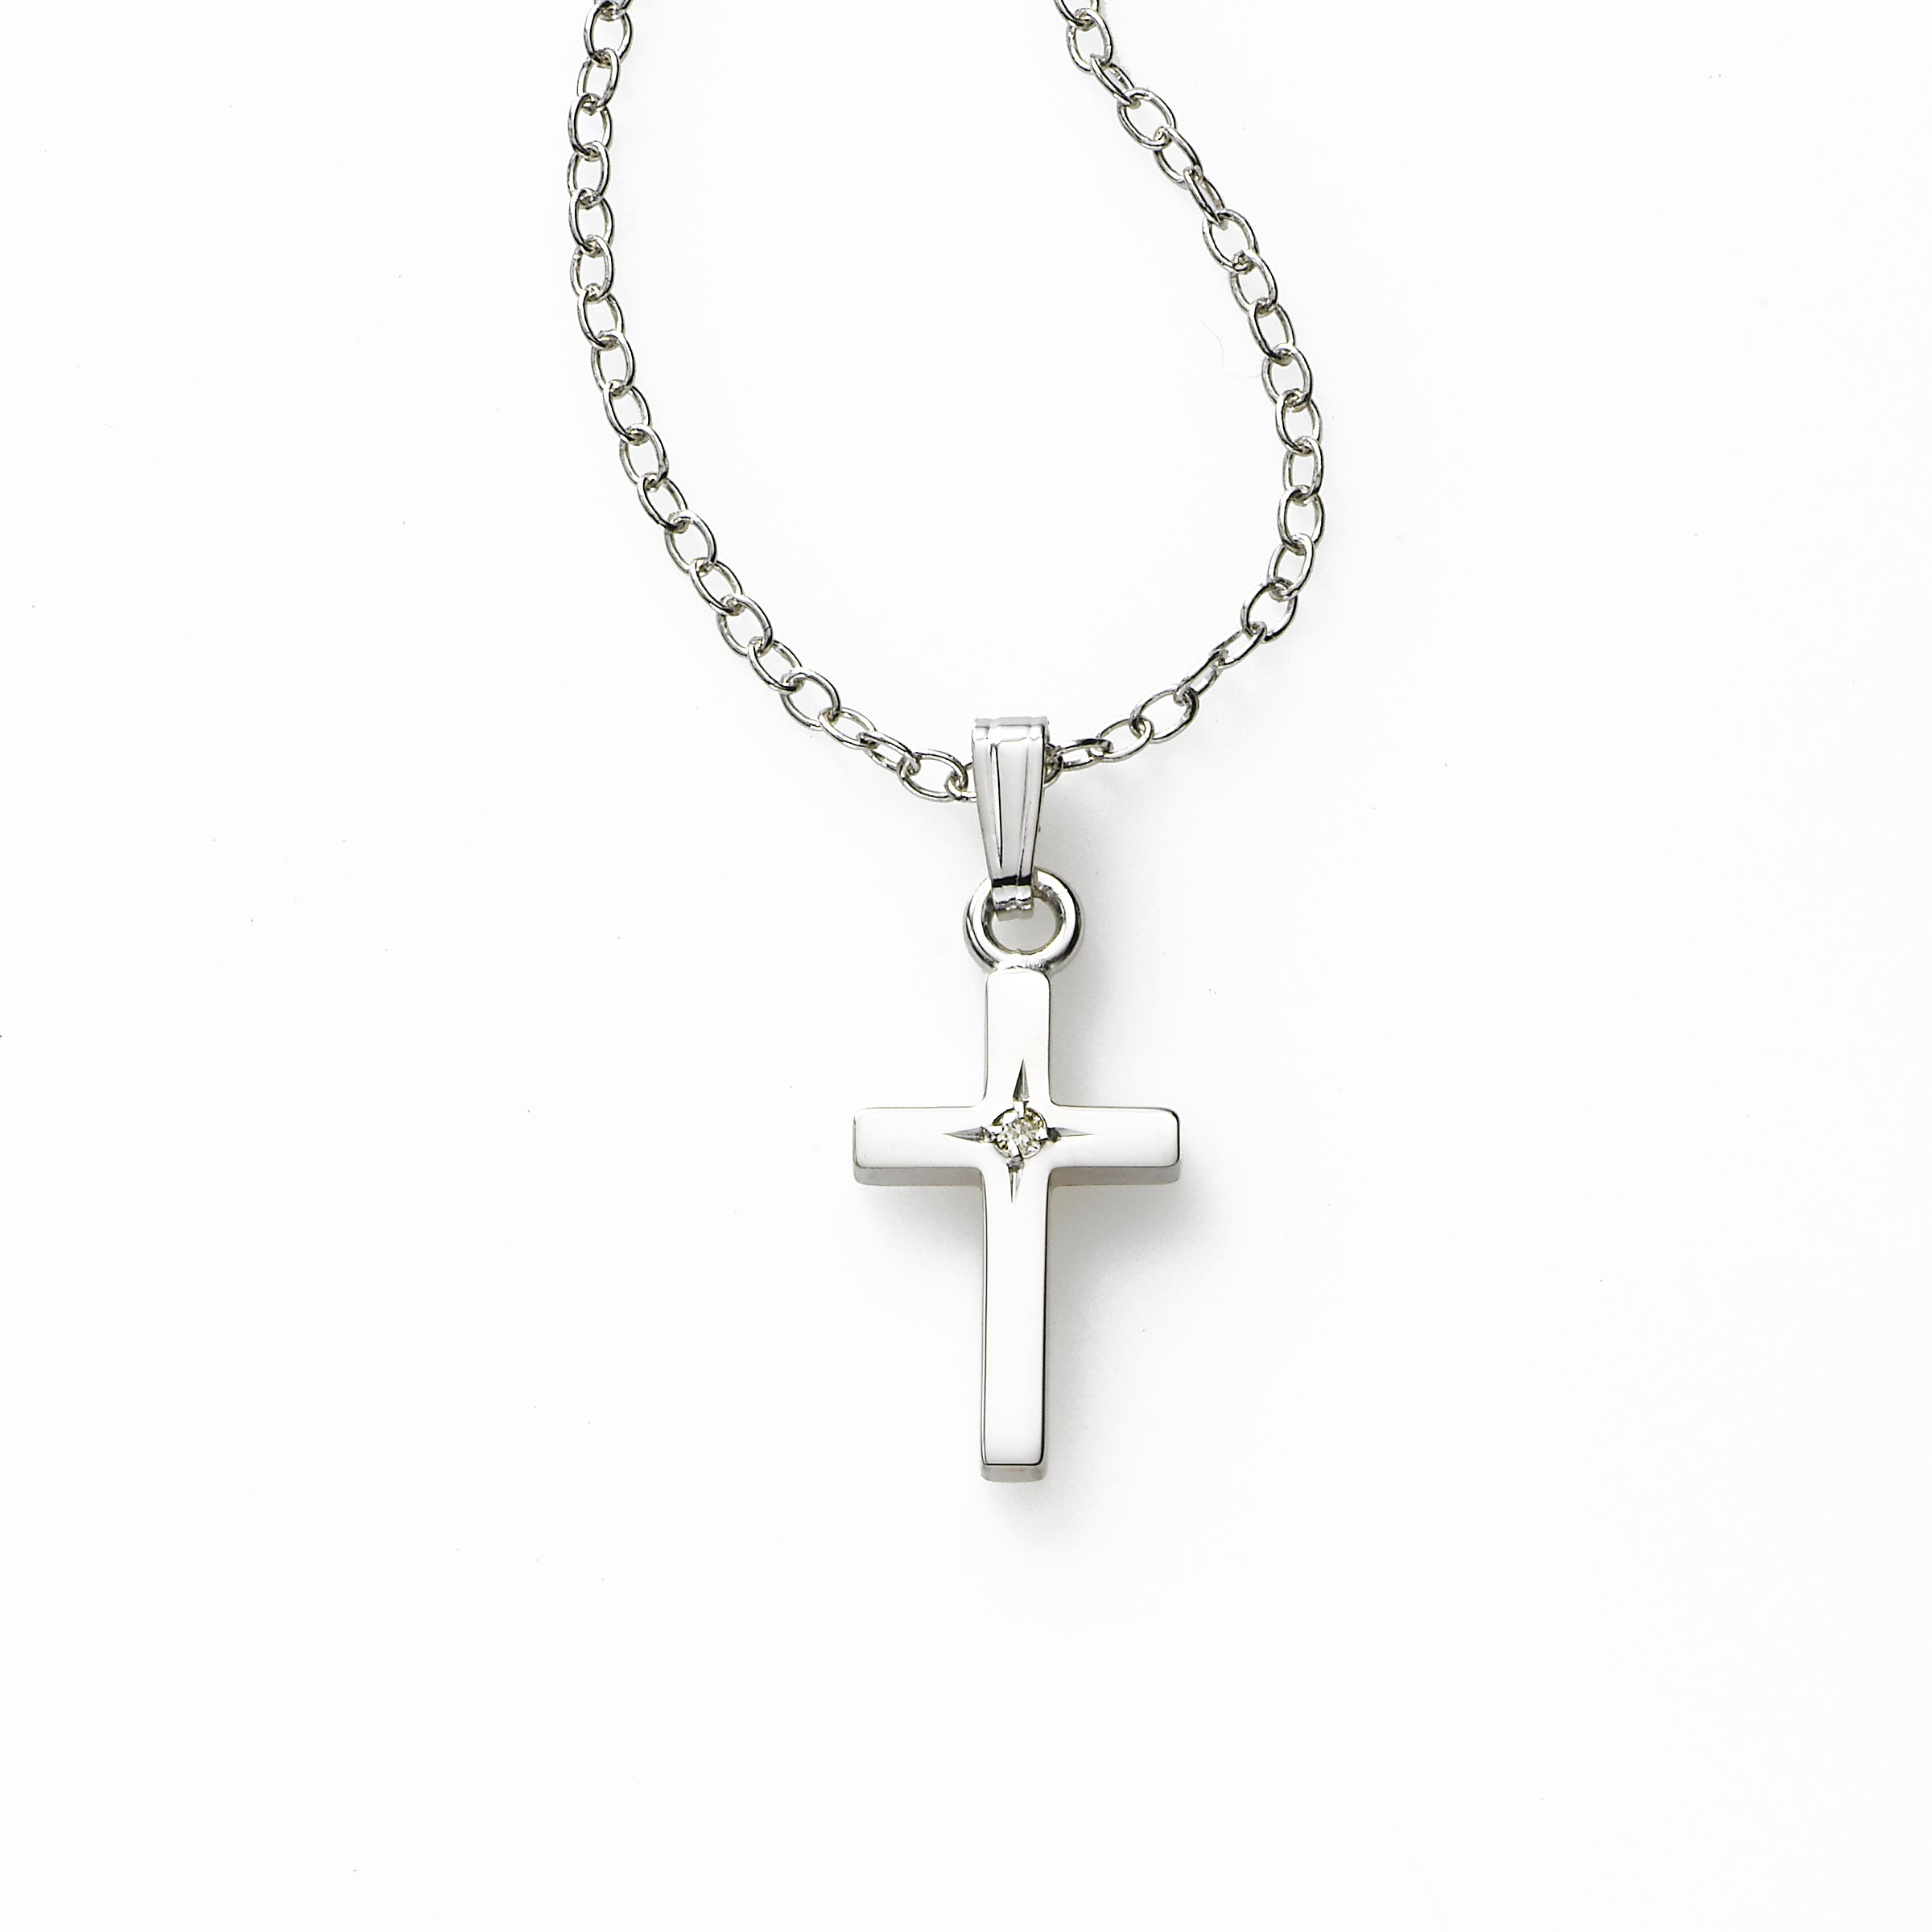 Baby's Cross with a Diamond, Sterling Silver